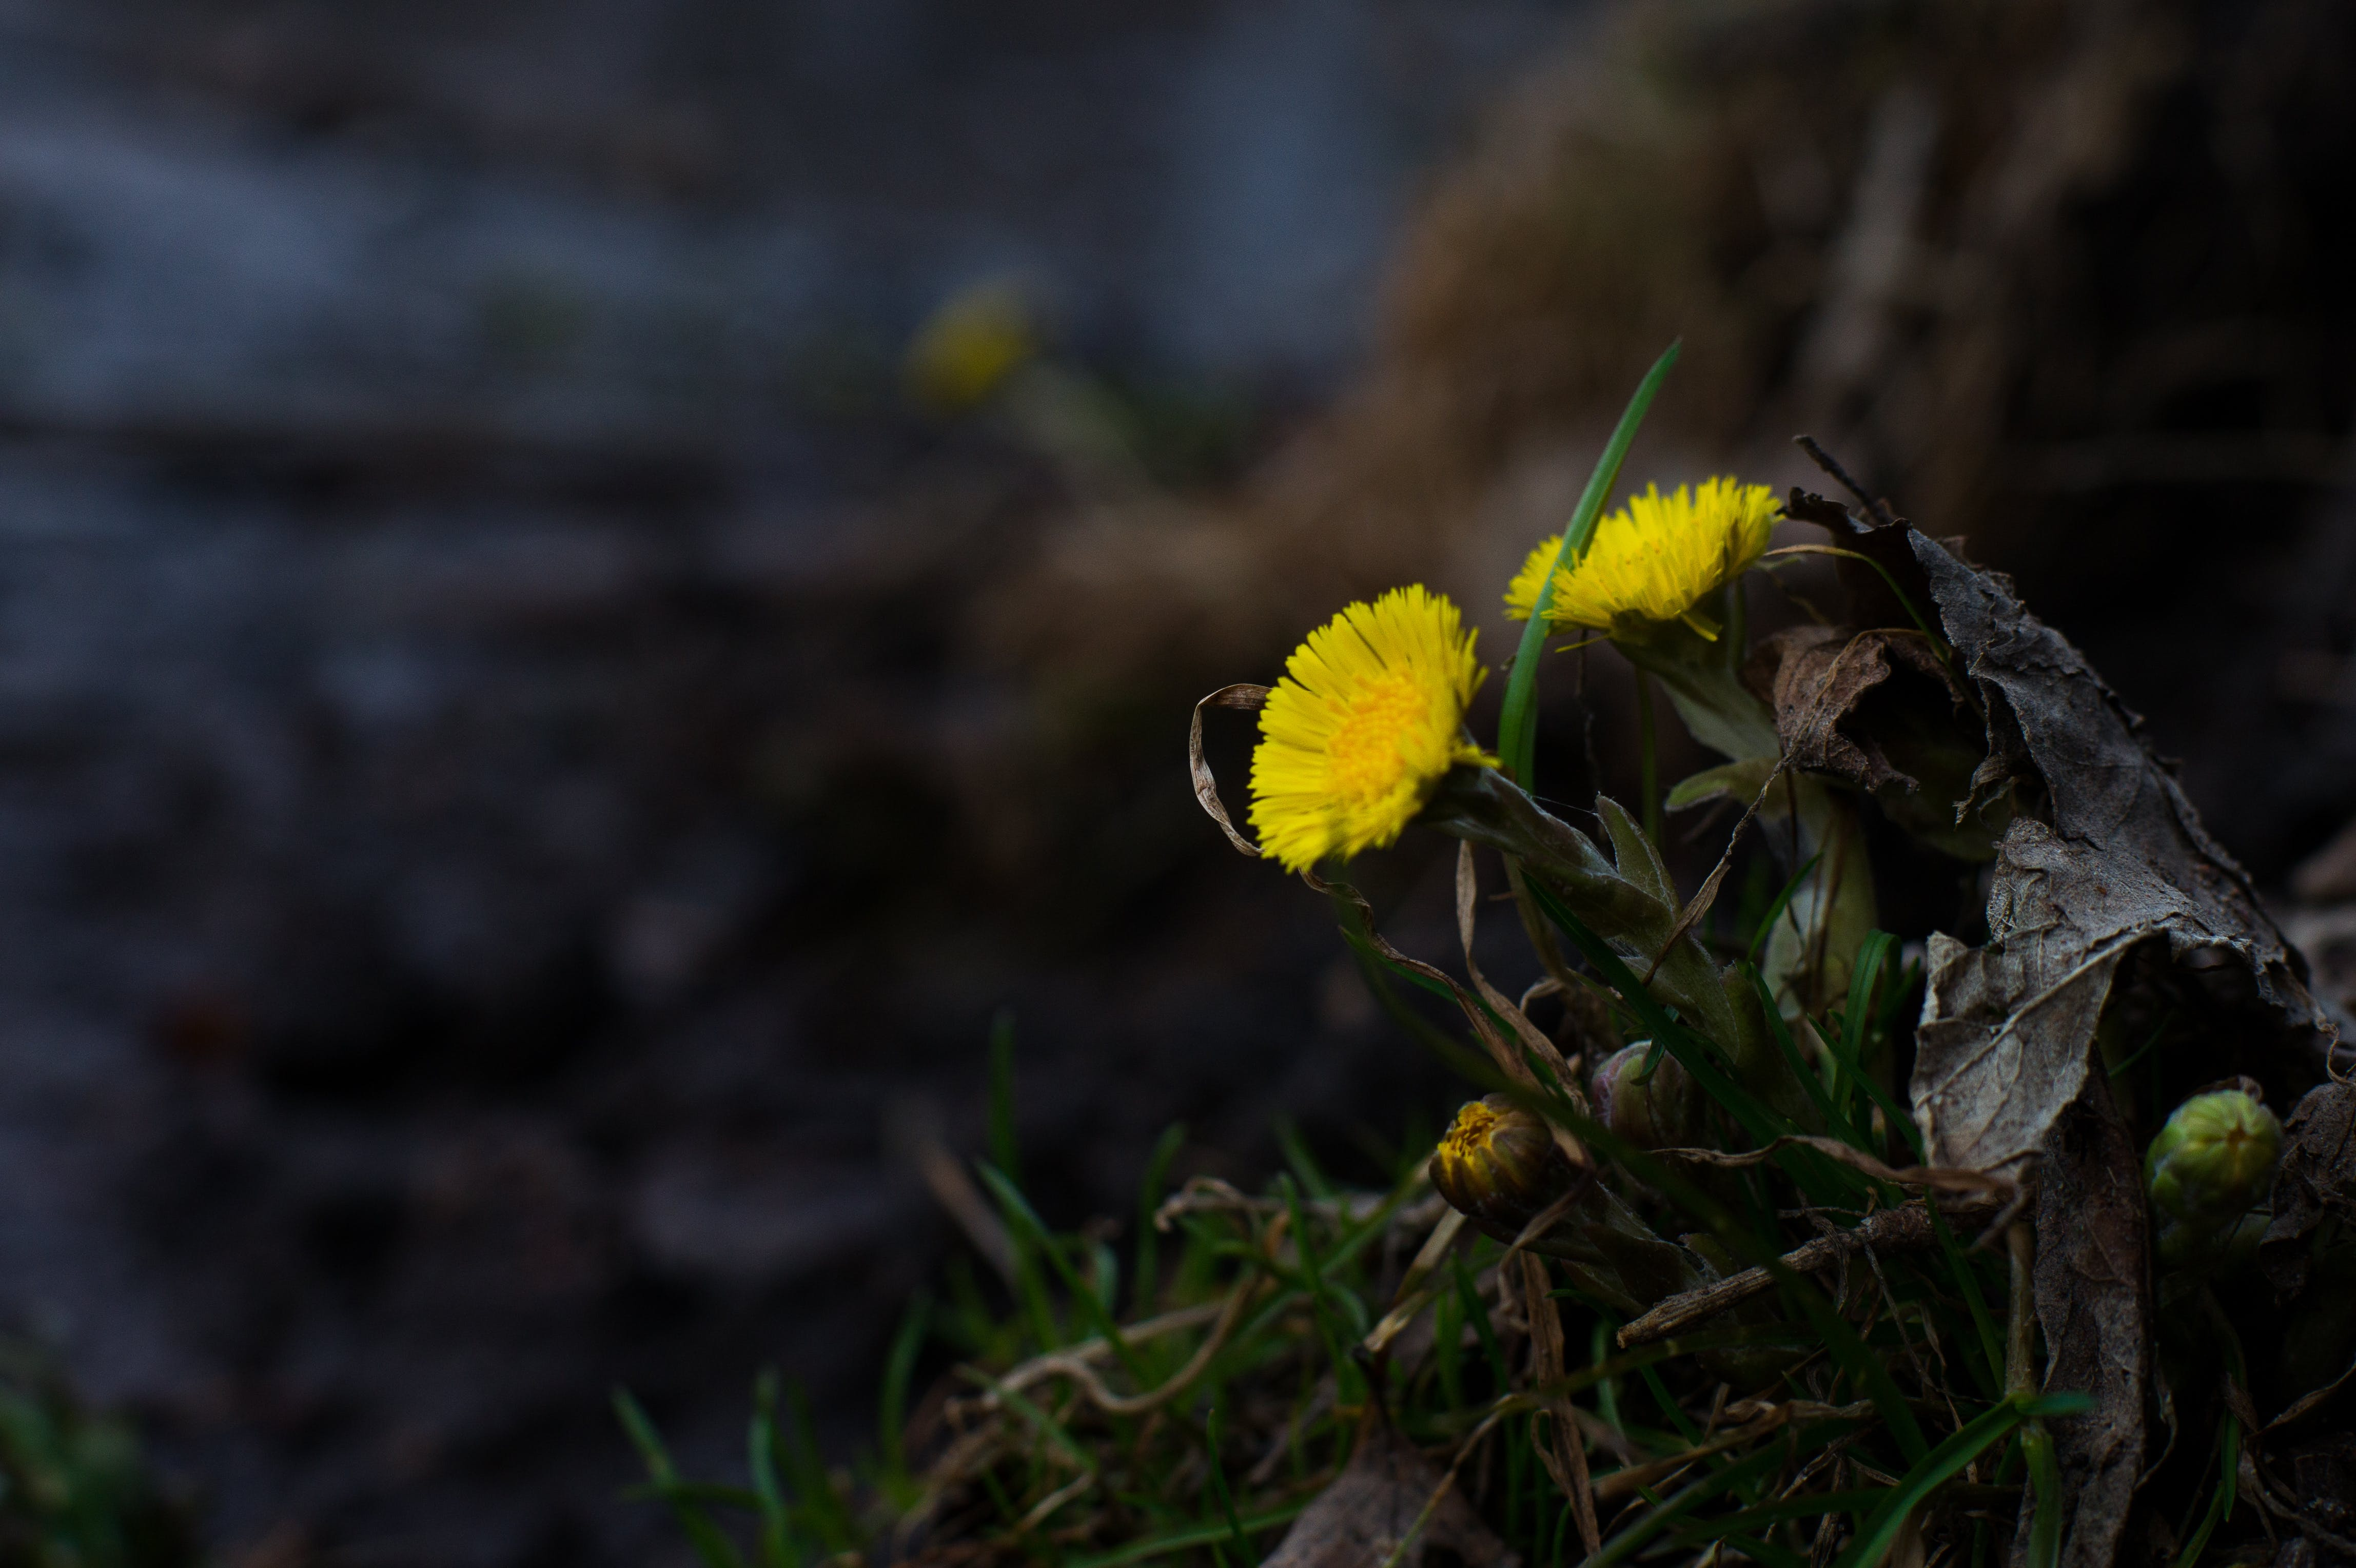 Free stock photo of dandelions, flowers, It's spring, park